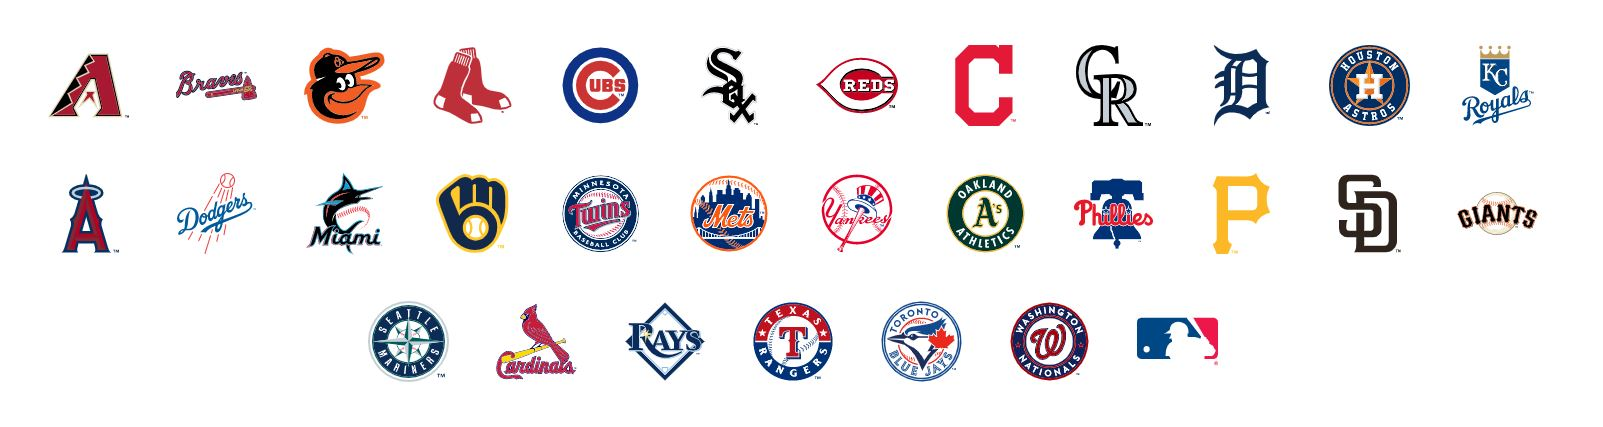 Fanatics MLB Teams